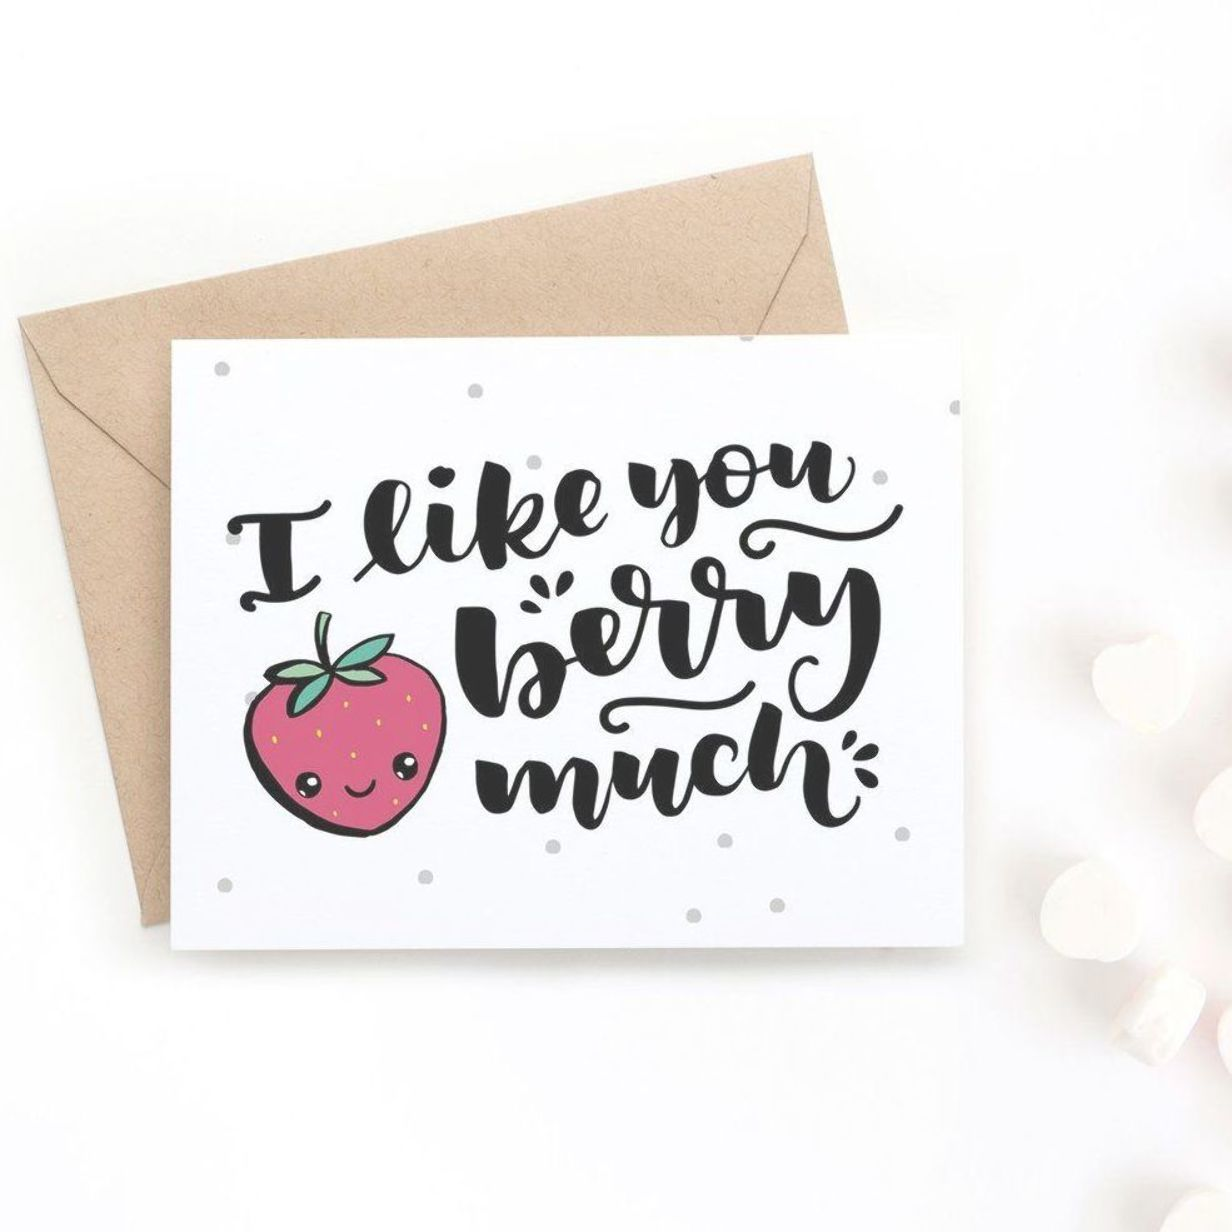 Surprise your valentine with this adorable hand-drawn Valentine's Day card. It says I like you berr